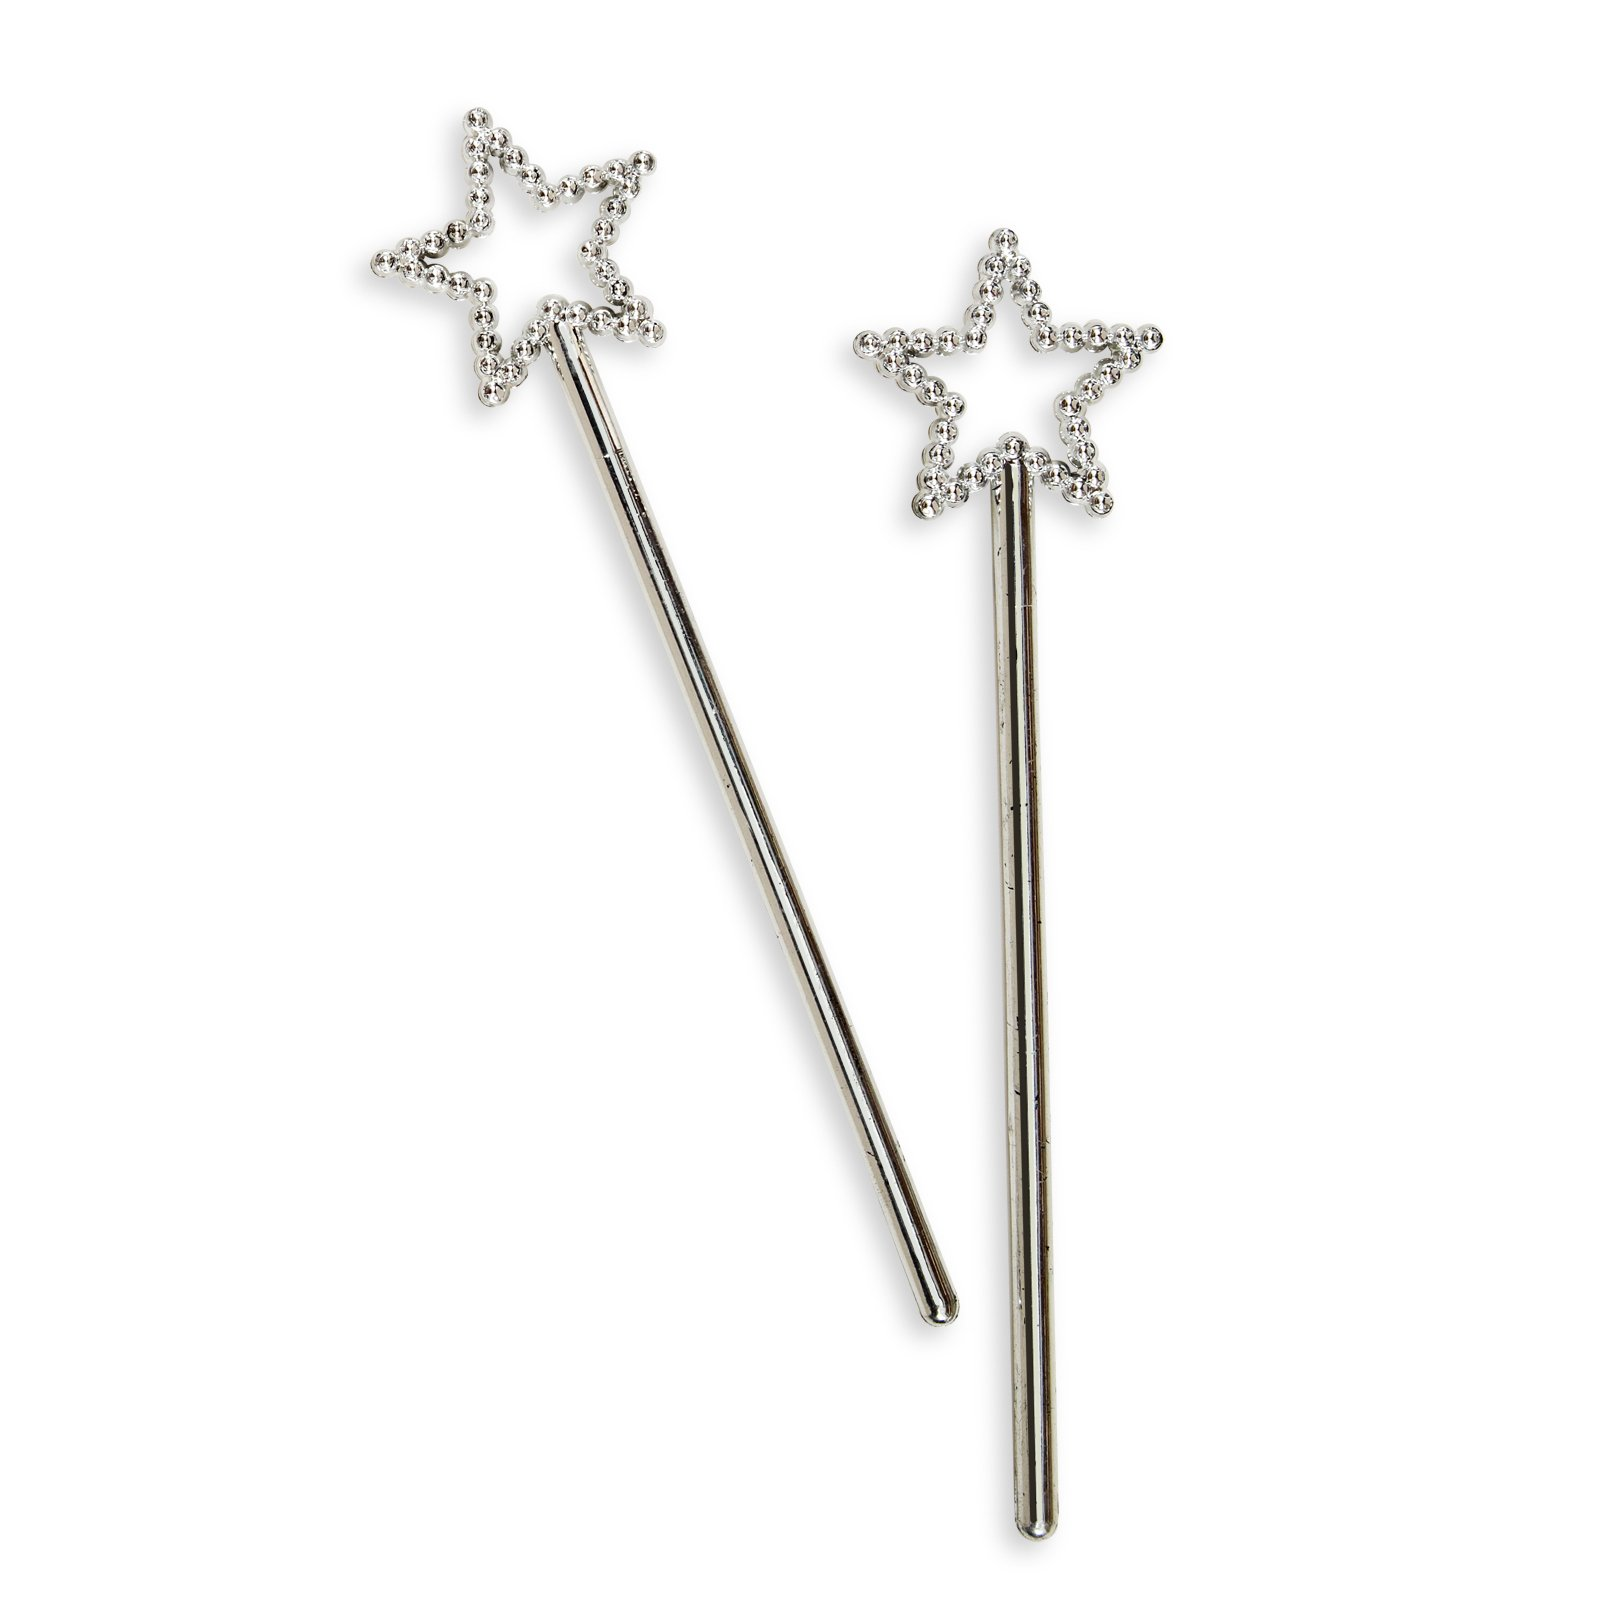 Silver Star Wands (8 count)